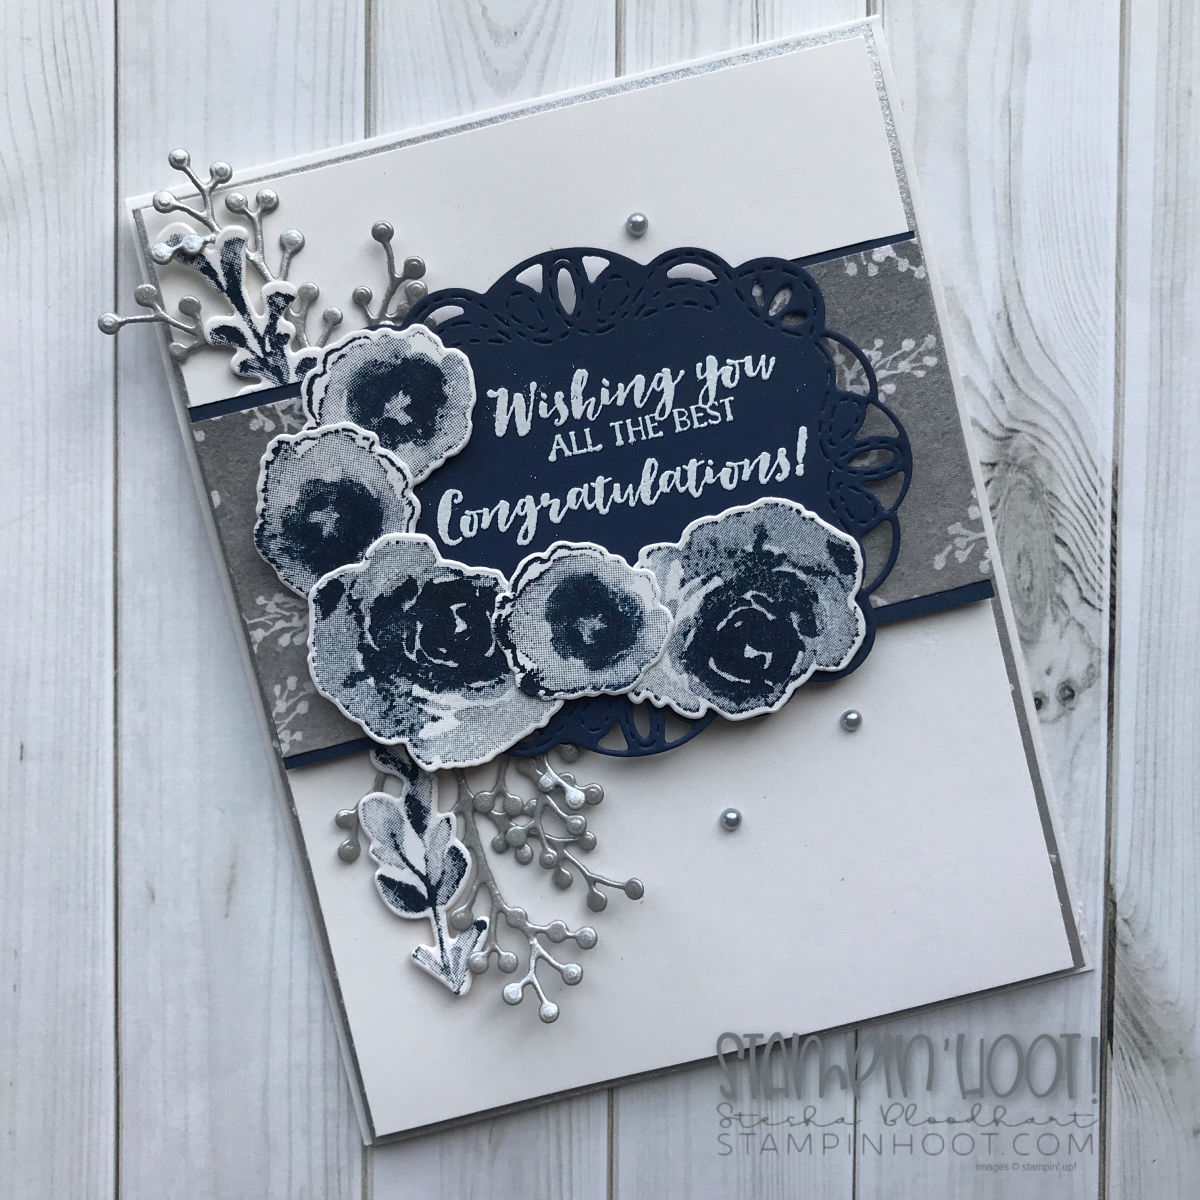 First Frost Bundle by Stampin' Up! Wedding Card created by Stesha Bloodhart, Stampin' Hoot! #steshabloodhart #stampinhoot